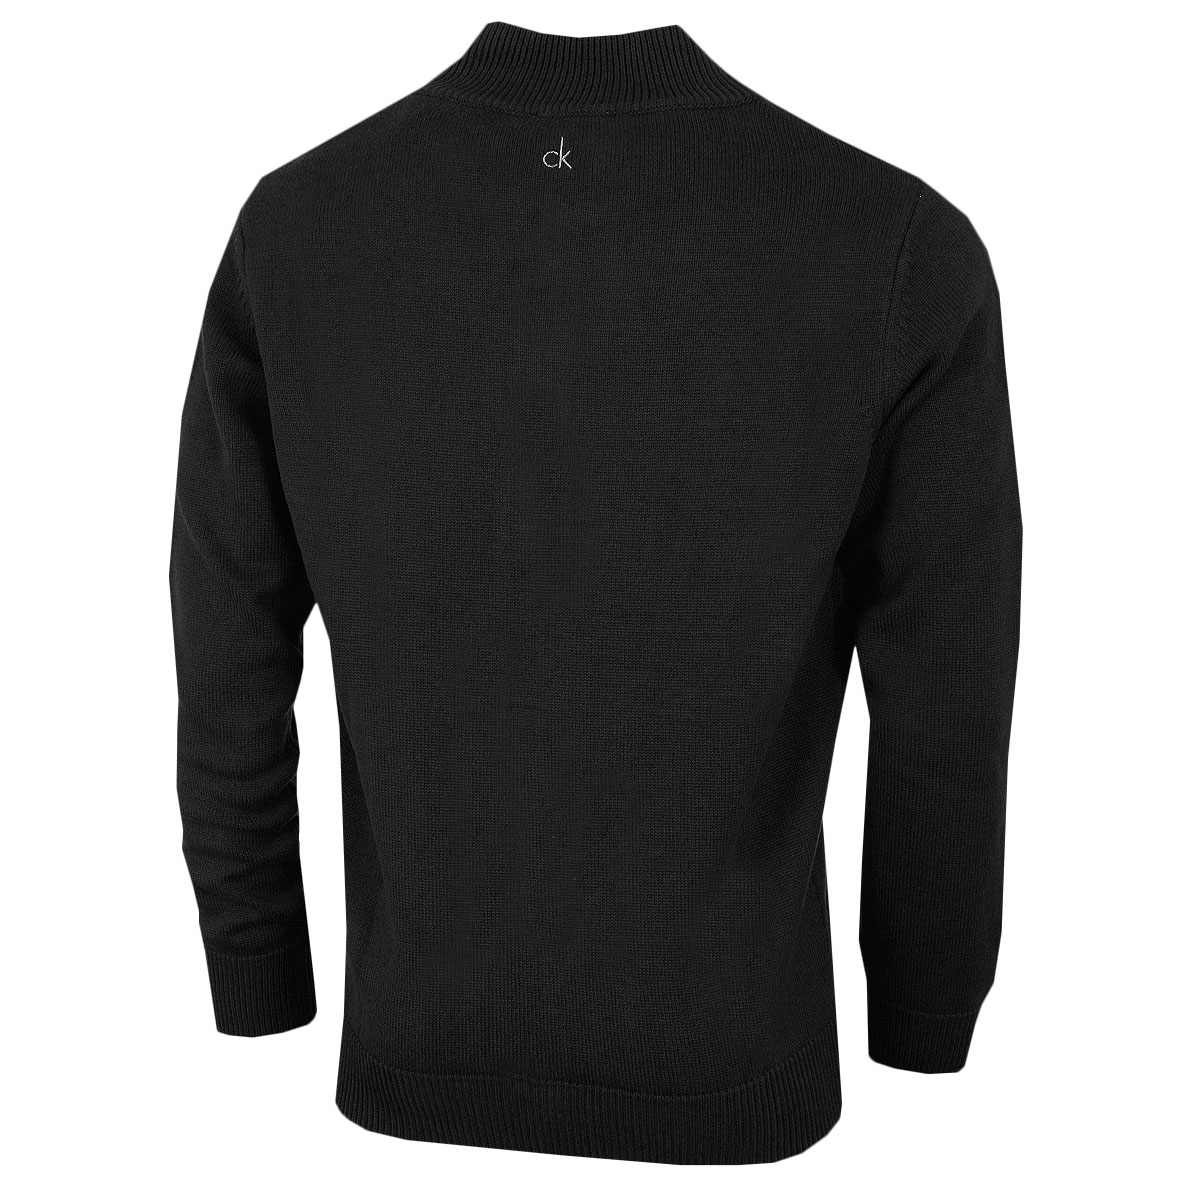 Calvin-Klein-Golf-Mens-2019-Chunky-Cotton-1-2-Zip-Golf-Top-Sweater-28-OFF-RRP thumbnail 7